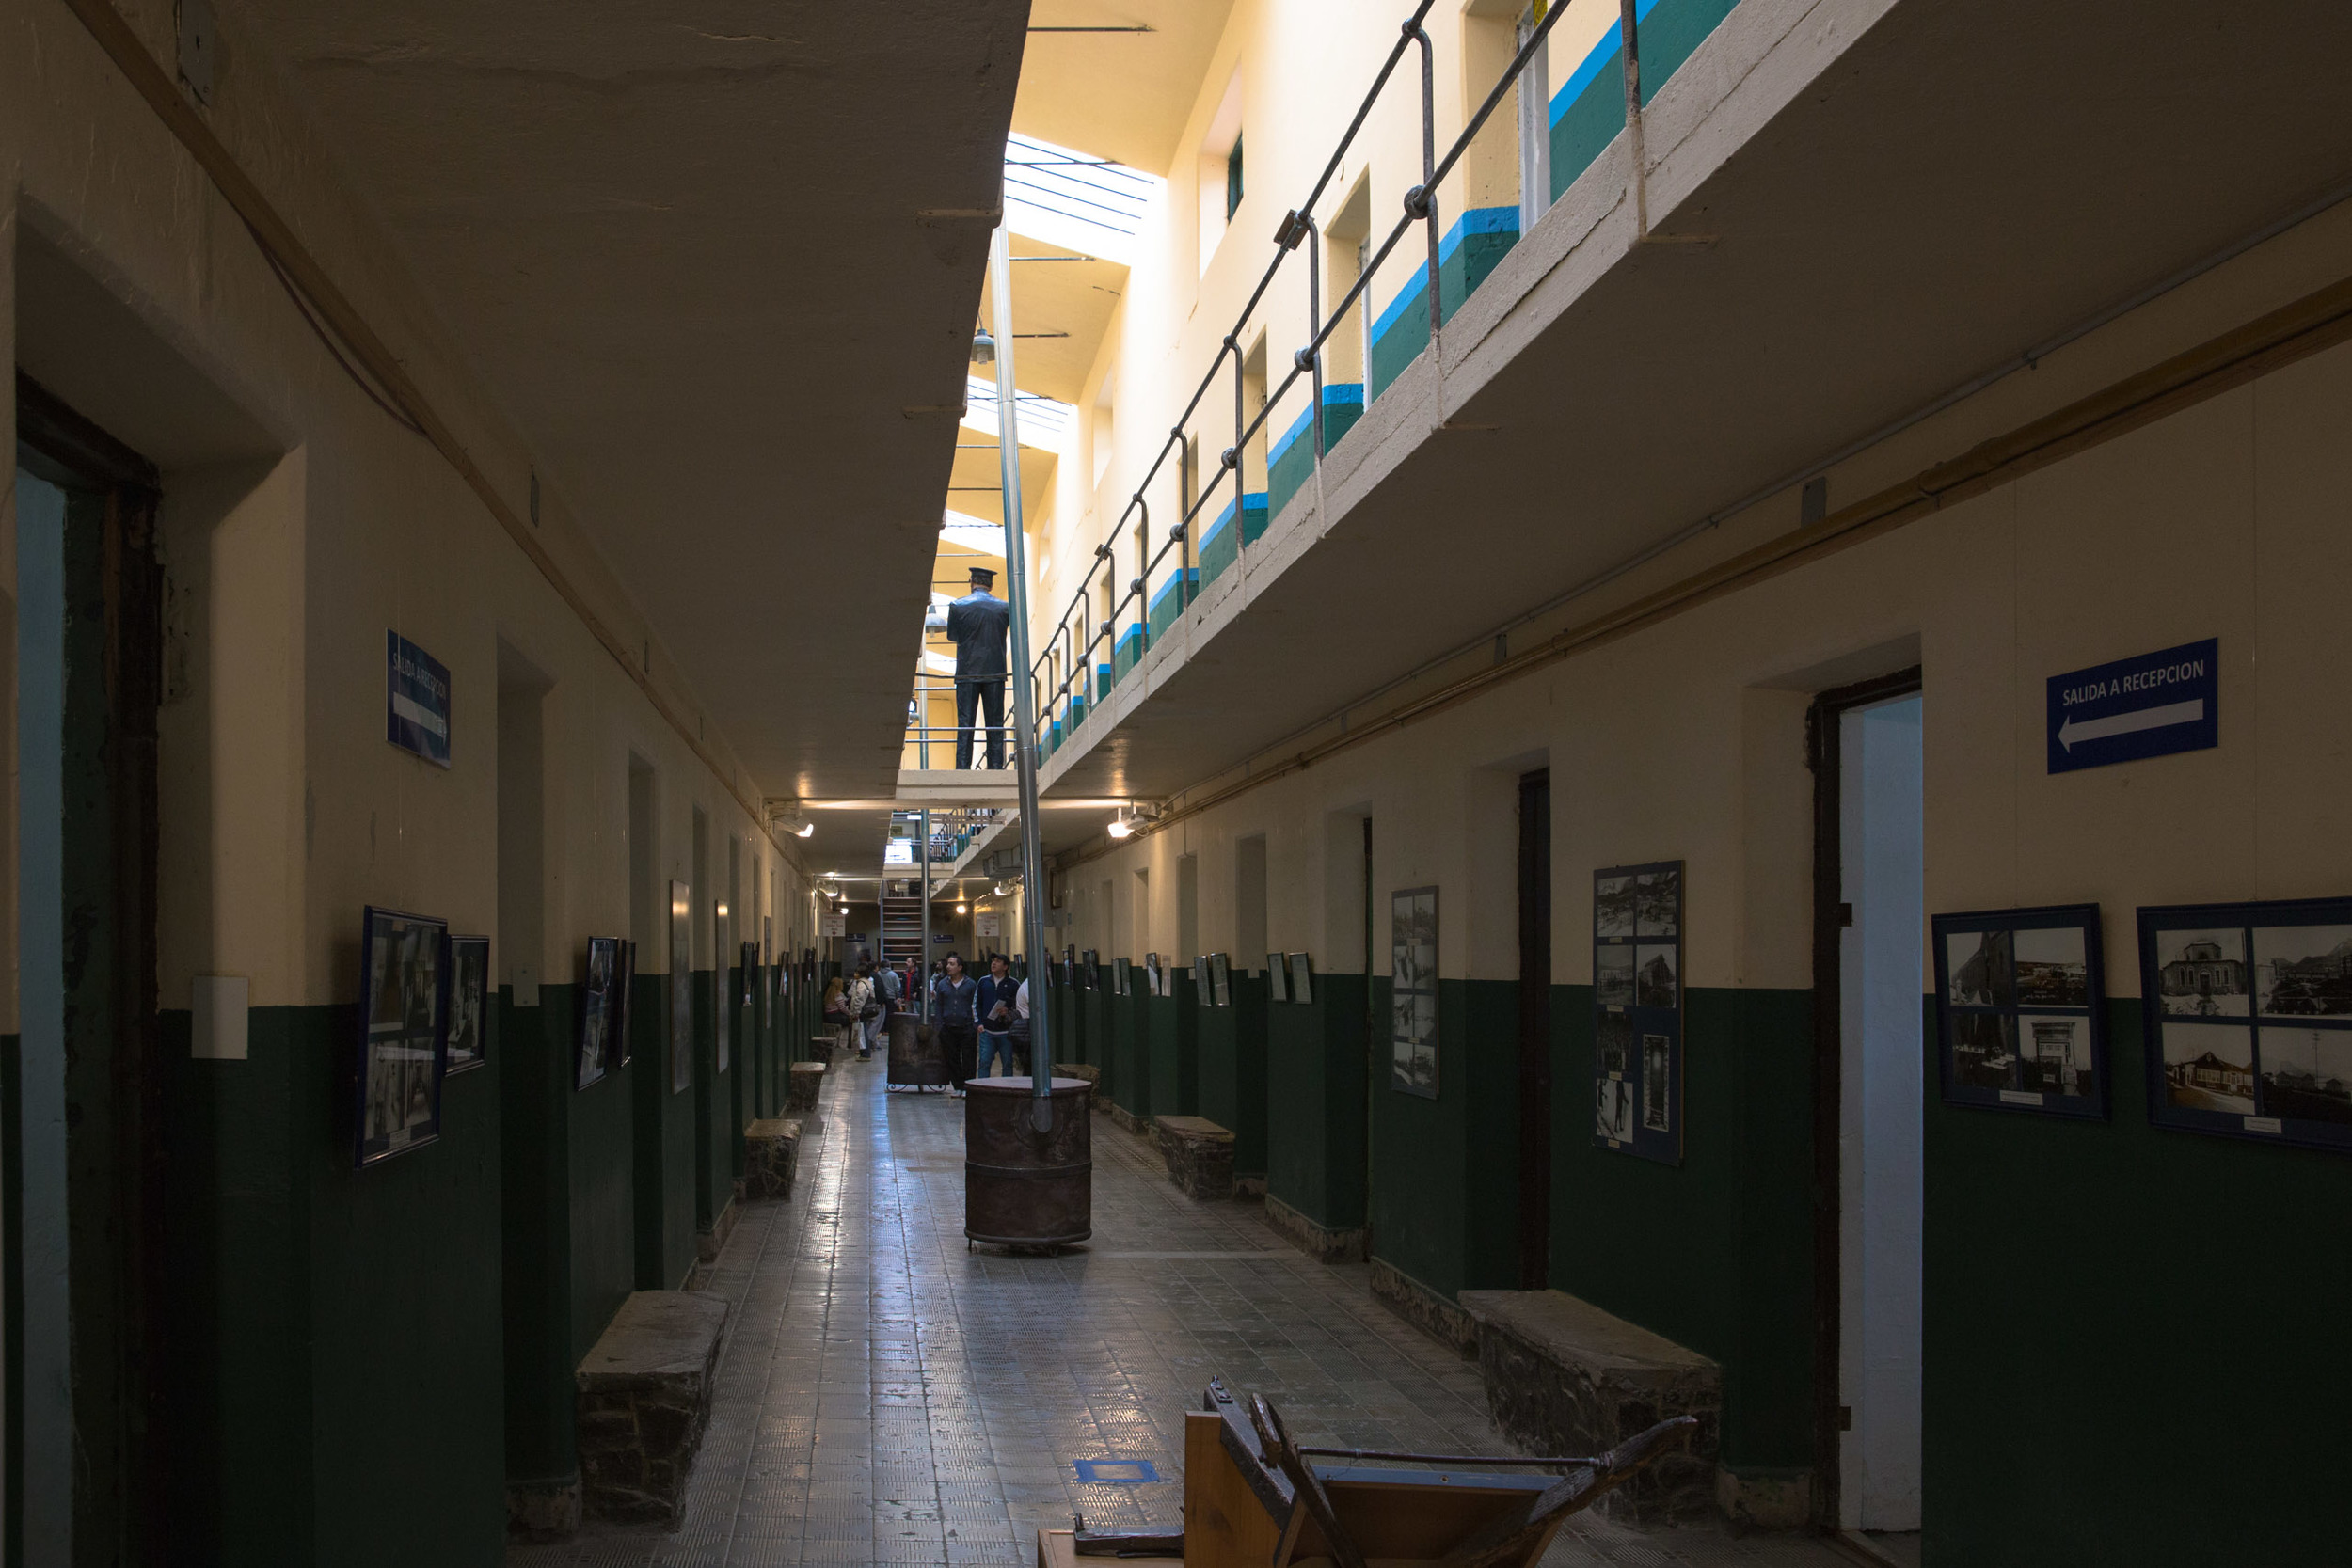 Inside the old prison, now a large, multi-wing museum.